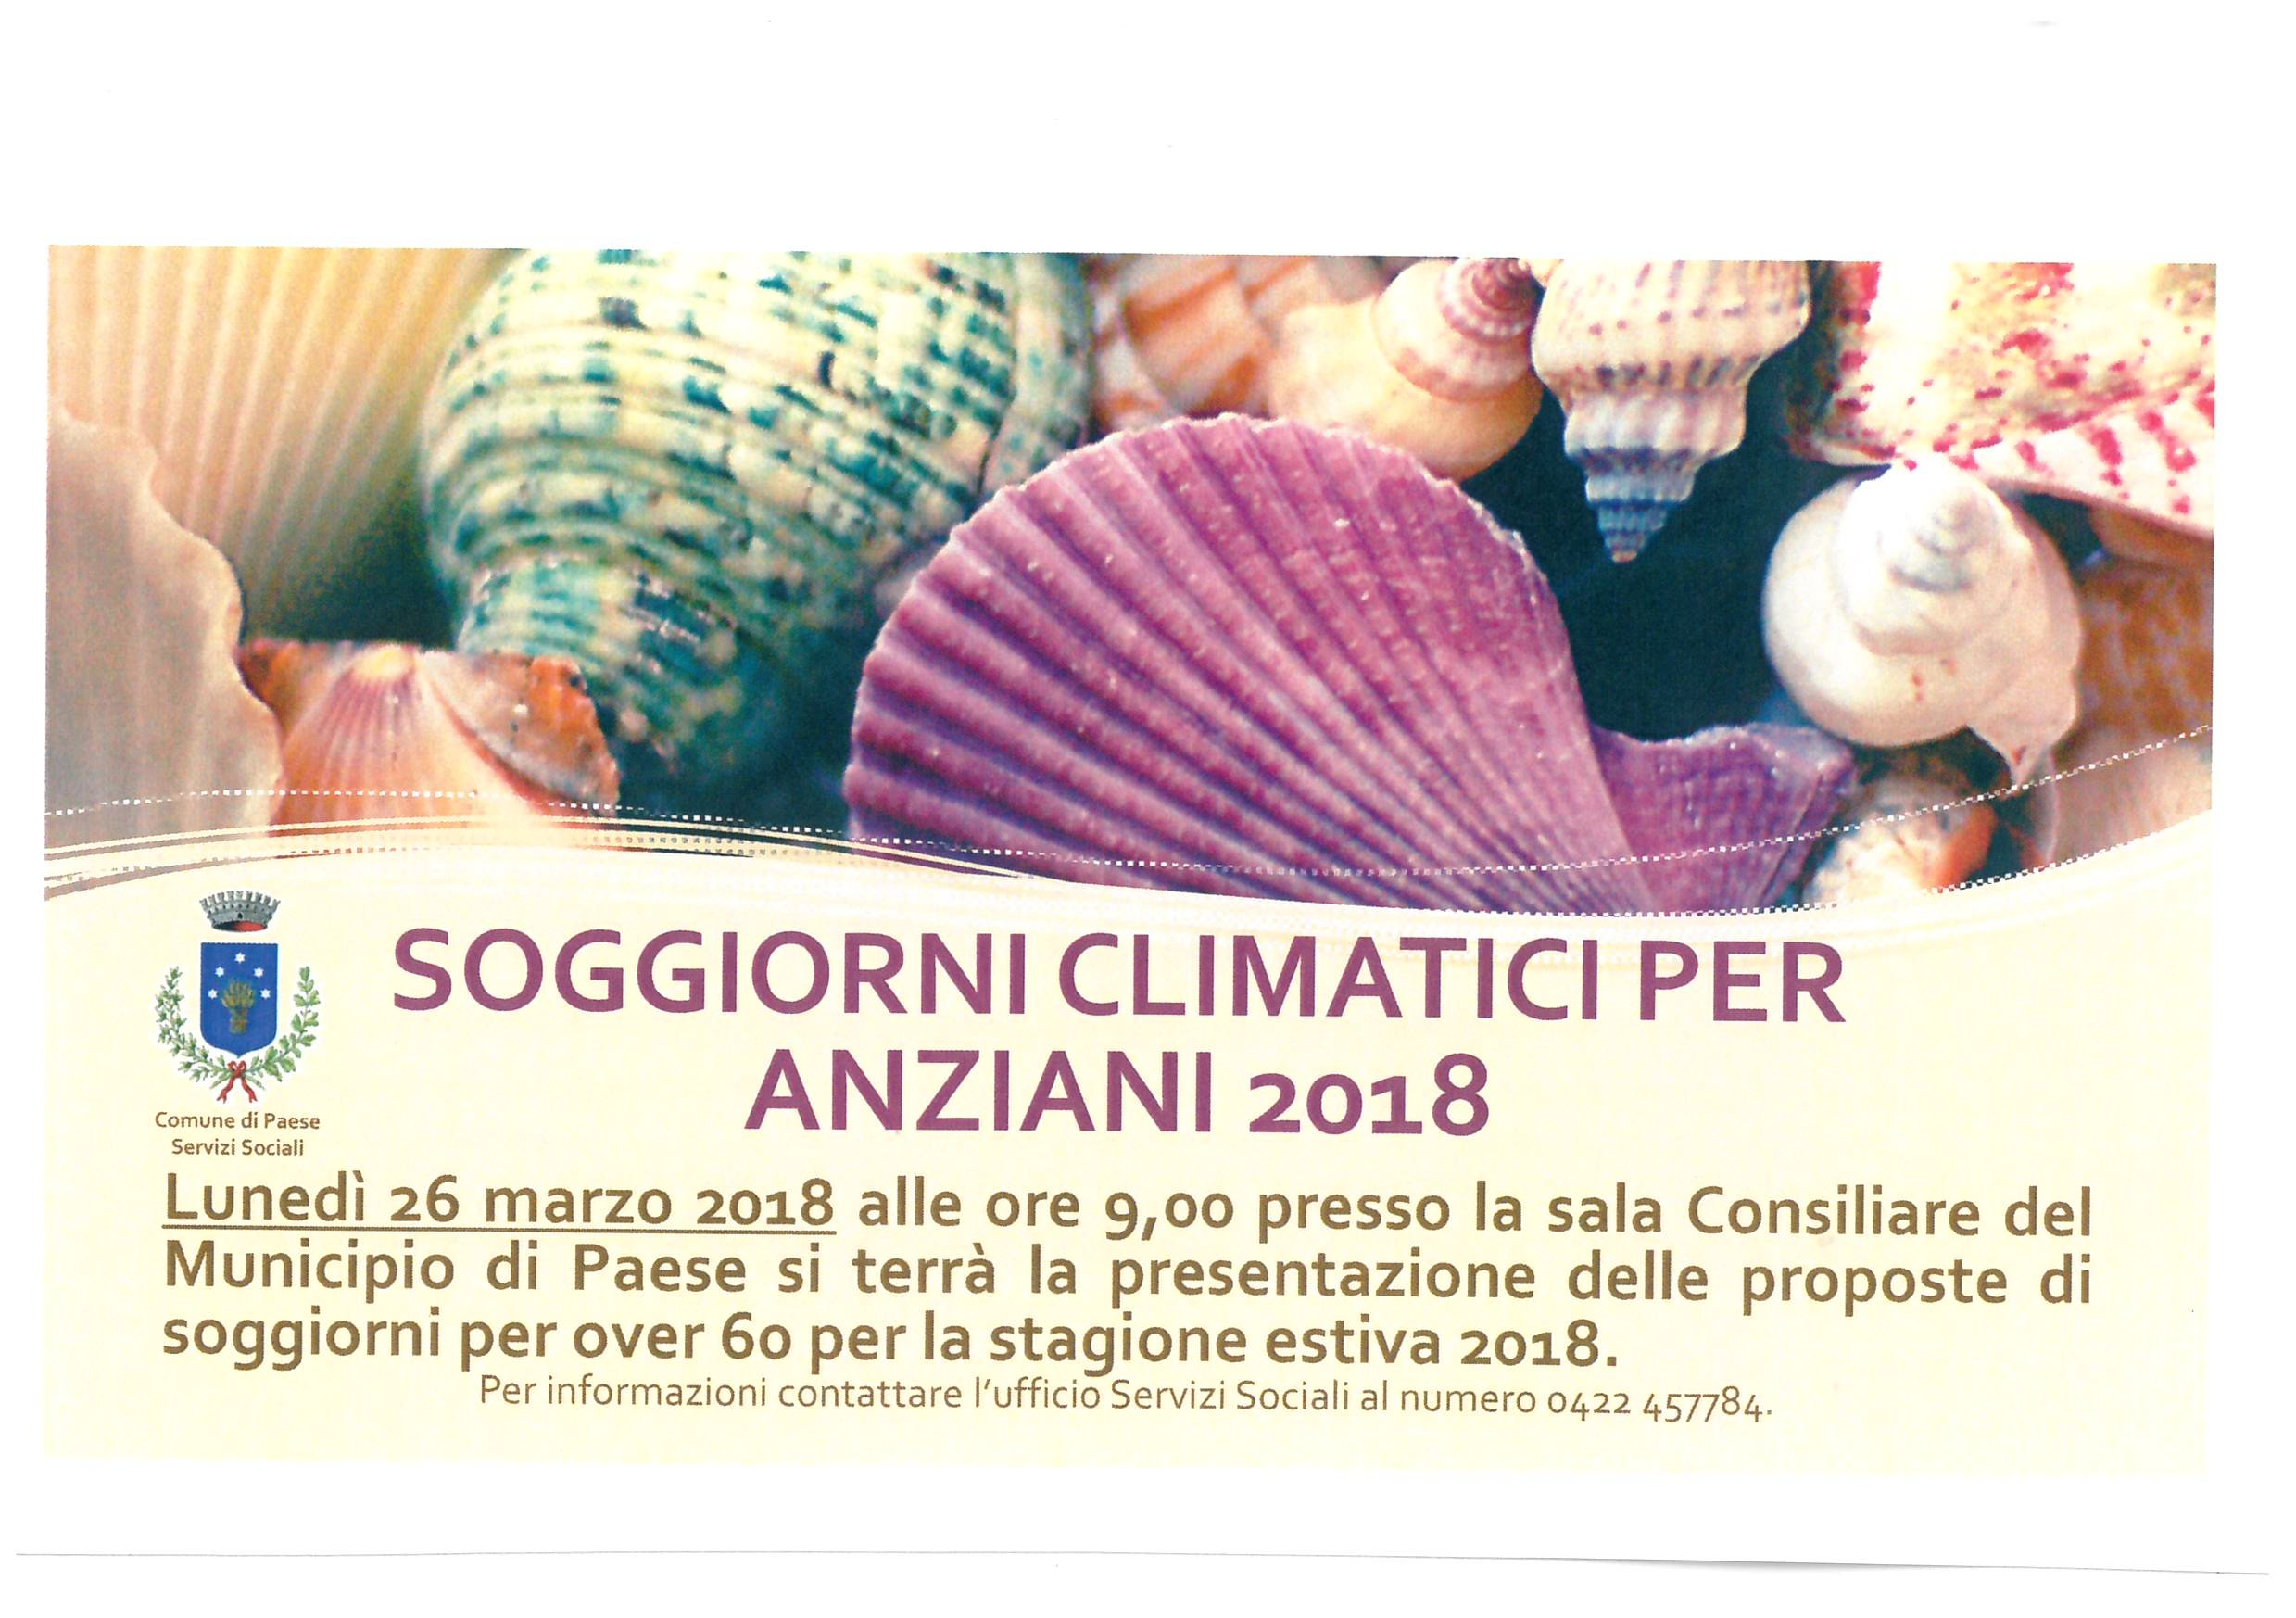 Emejing Soggiorni Climatici Per Anziani Photos - Design and Ideas ...